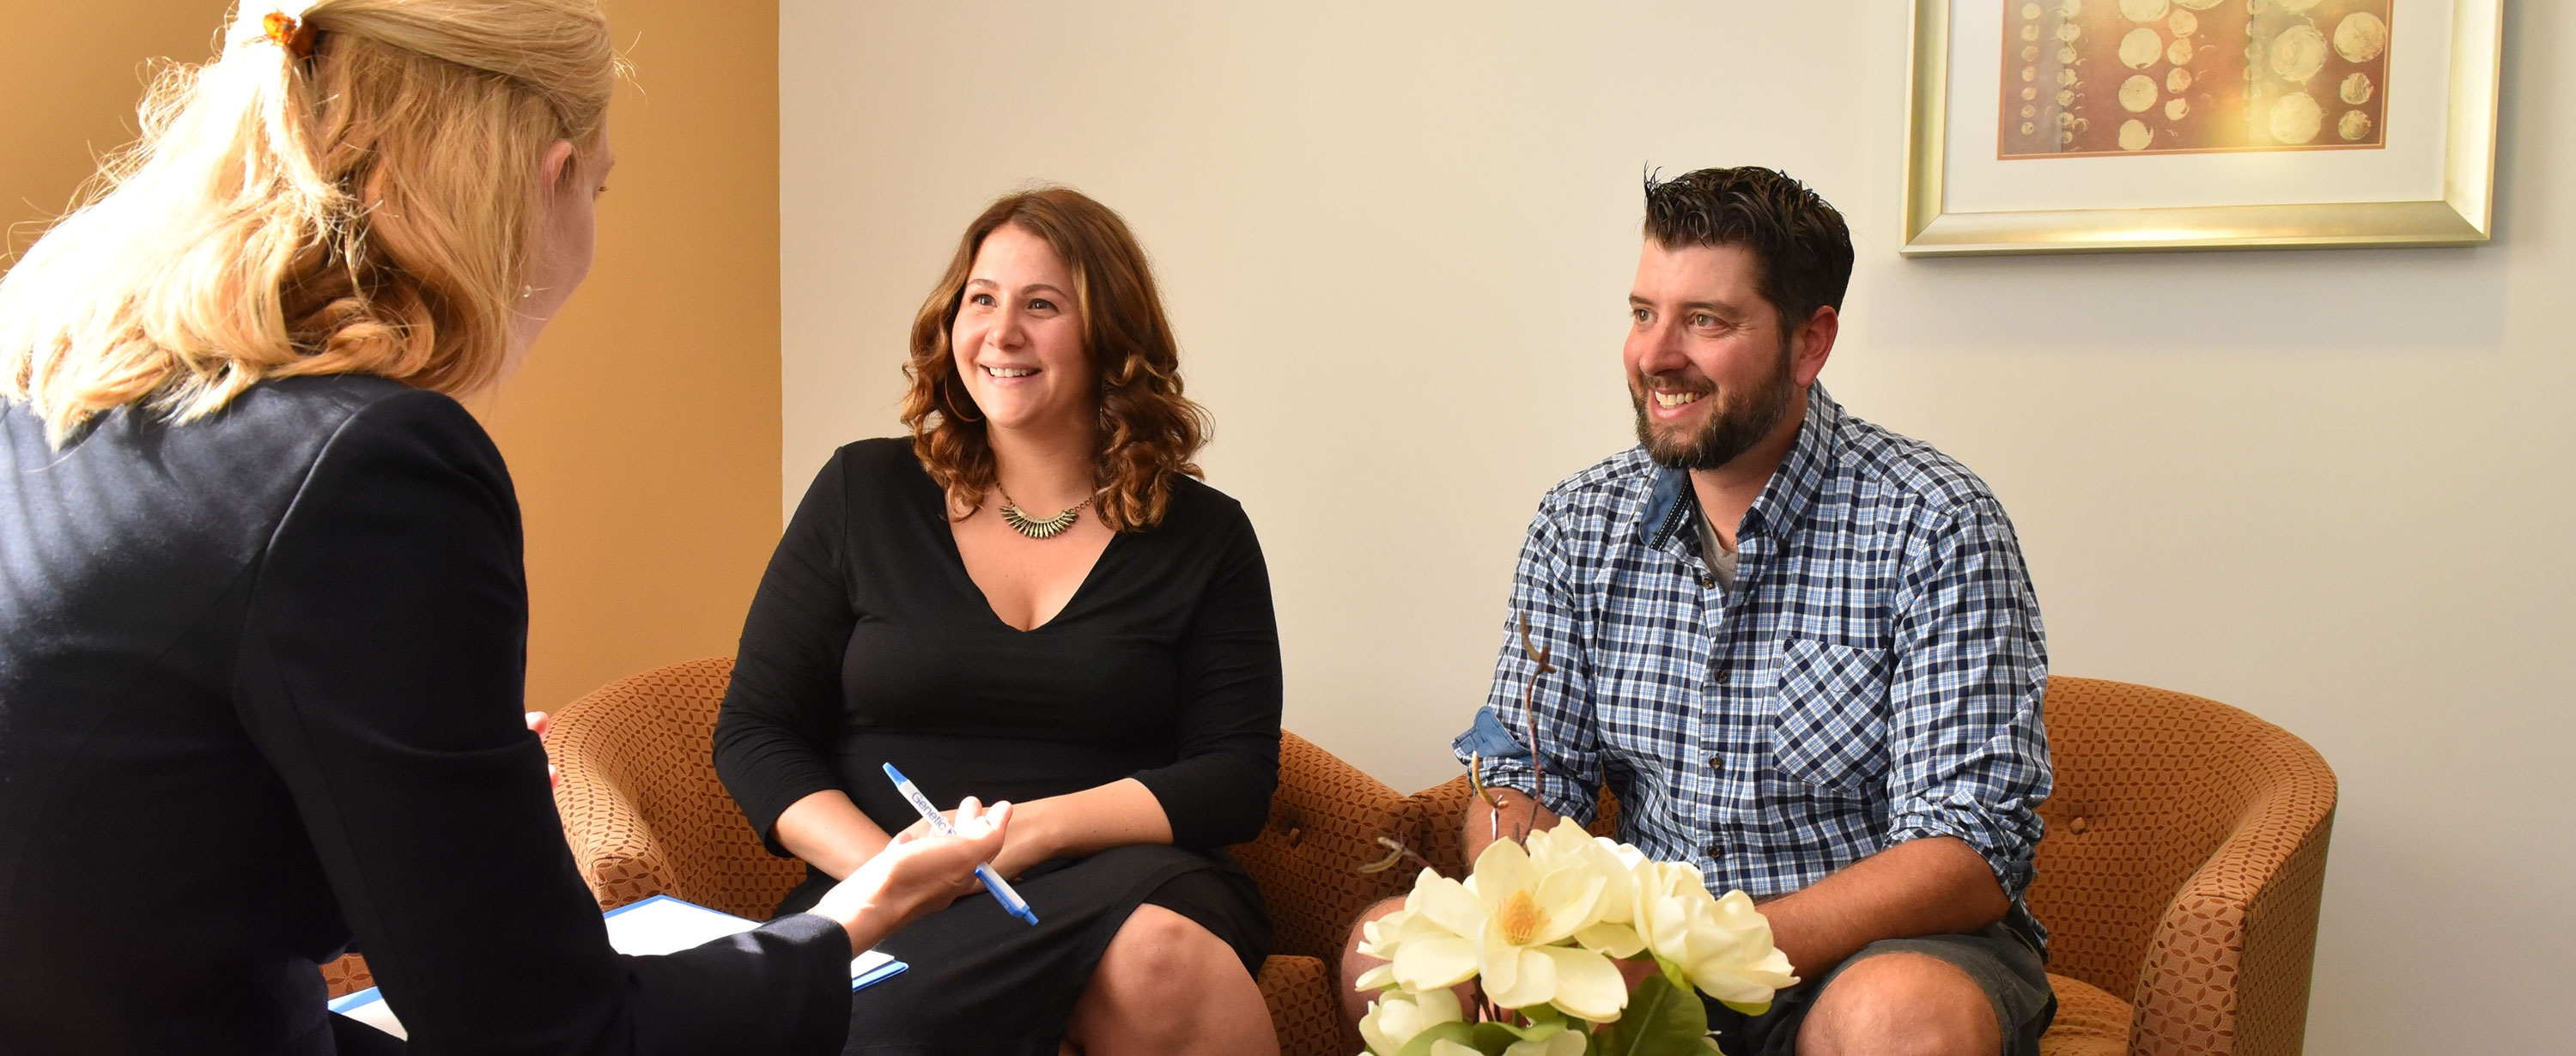 Genetic counselor with expectant couple